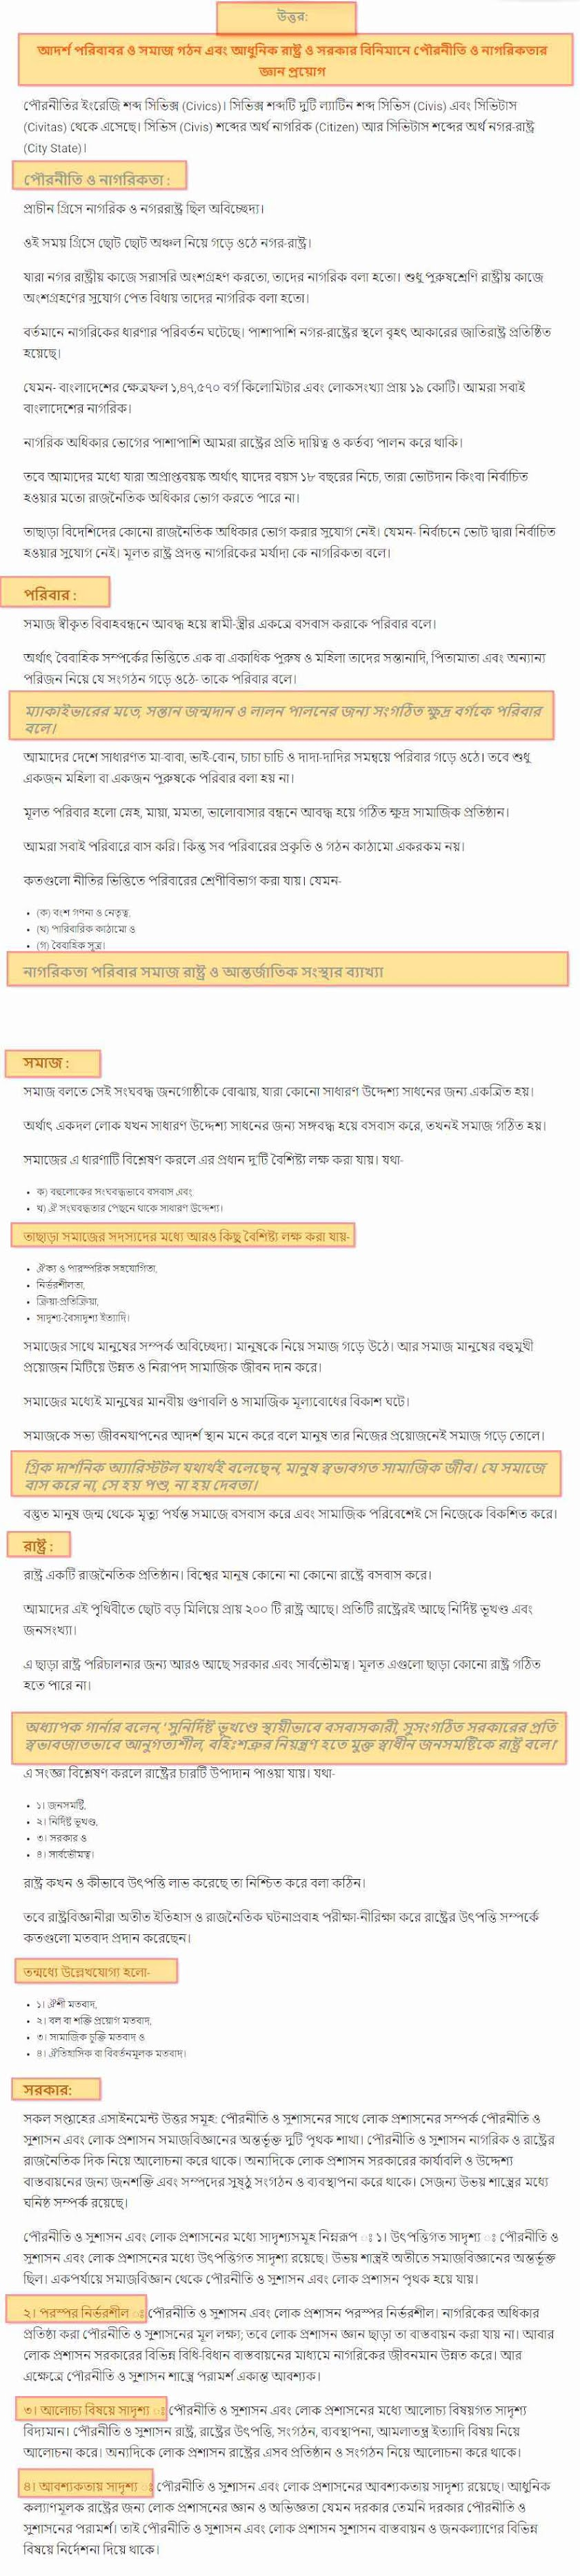 SSC Civics Subject 5th Week Assignment 2022 Answer